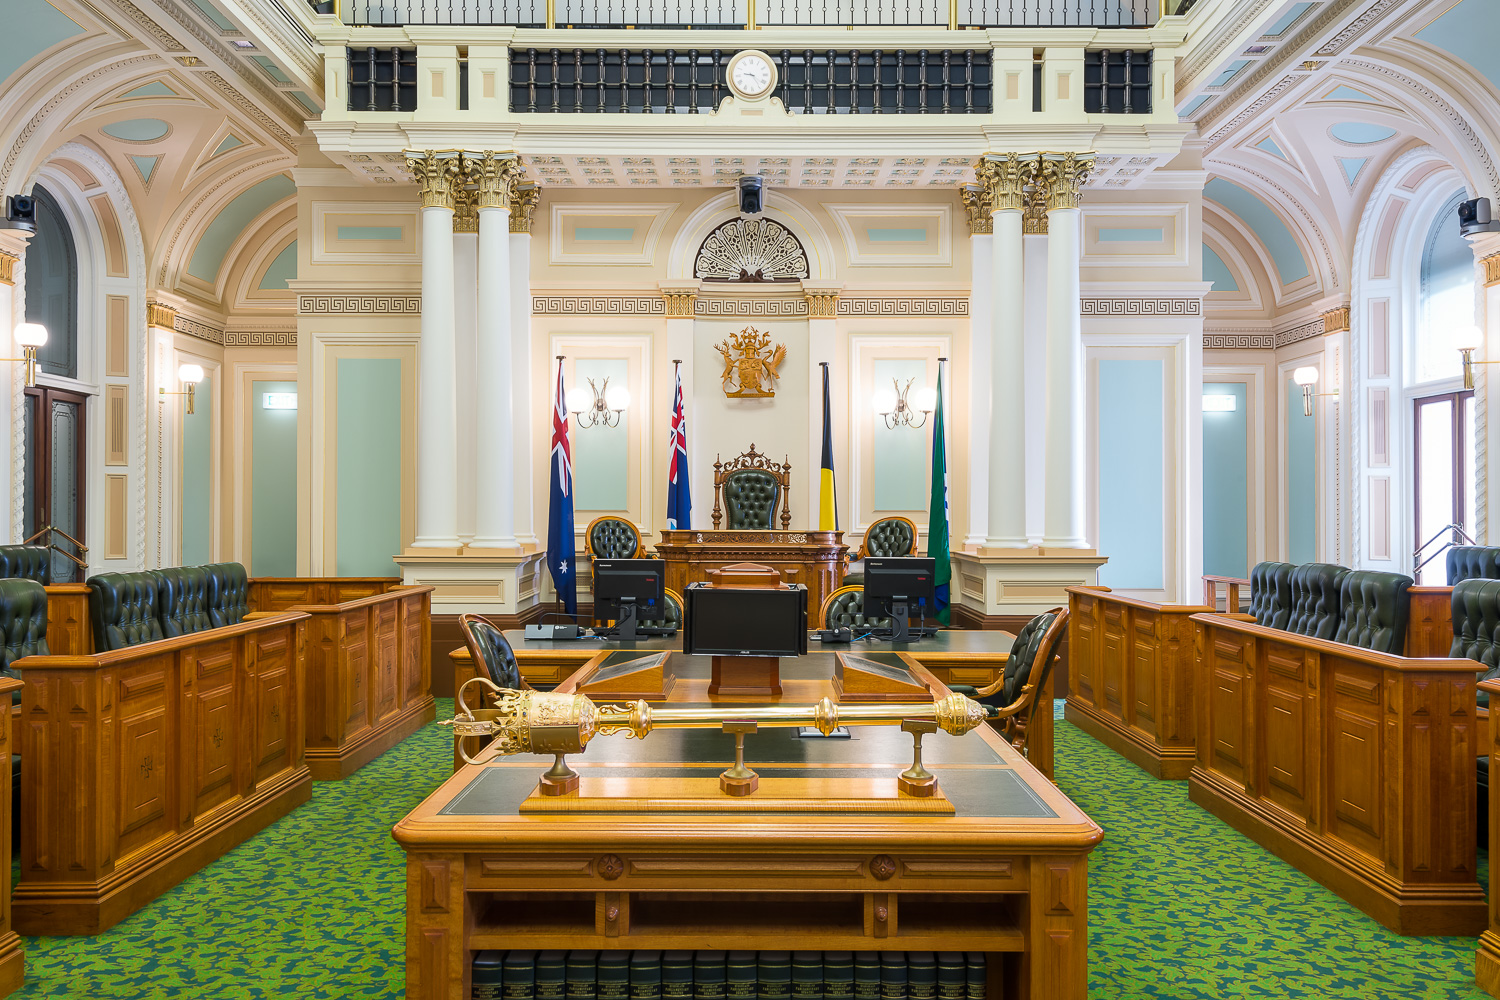 """A selection of photos for a new book titled """"The People's House - Queensland's Parliament House in Pictures"""" by the Queensland Parliament to celebrate the 150th anniversary of Queensland Parliament House."""